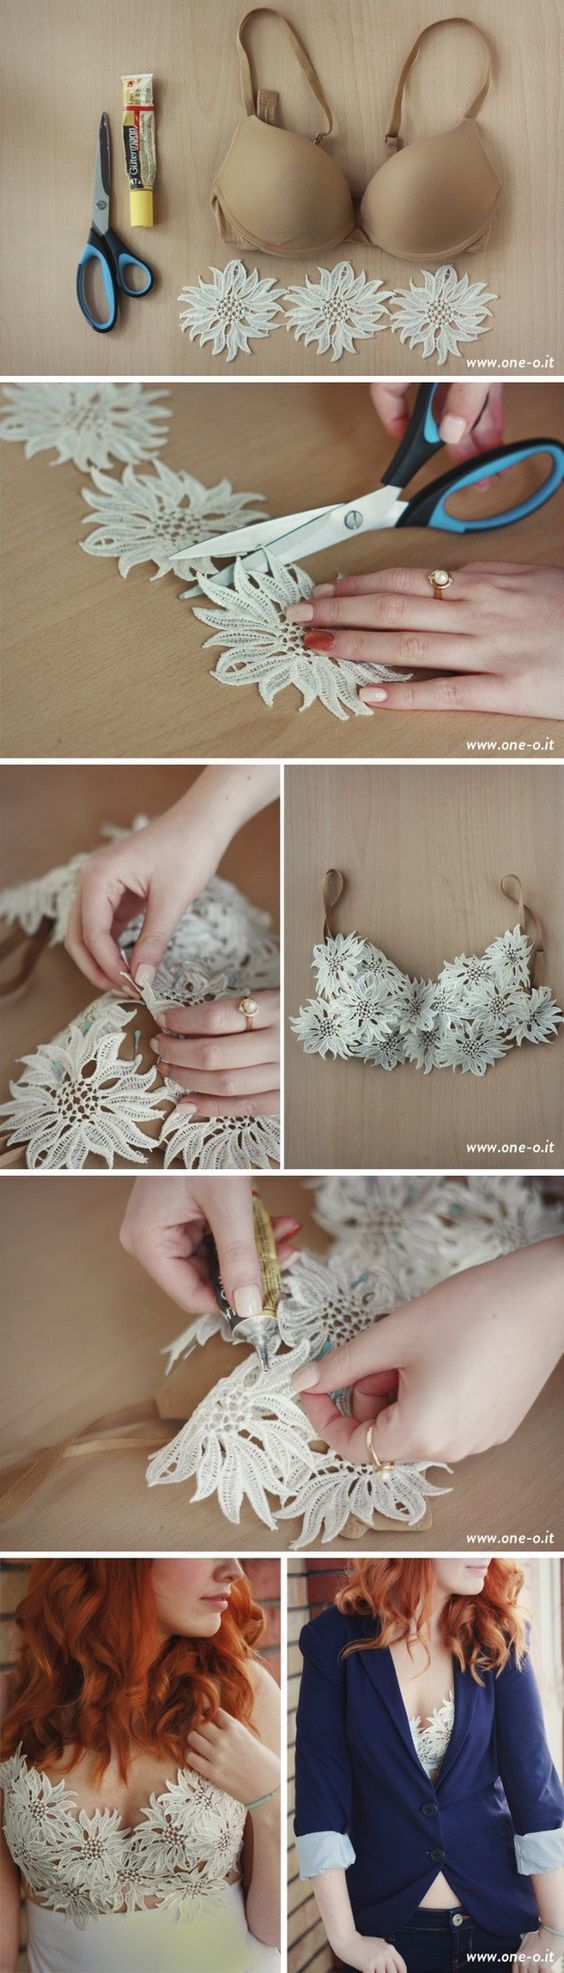 I would probably just add the lace flower pieces to a cami instead of the bra. . .